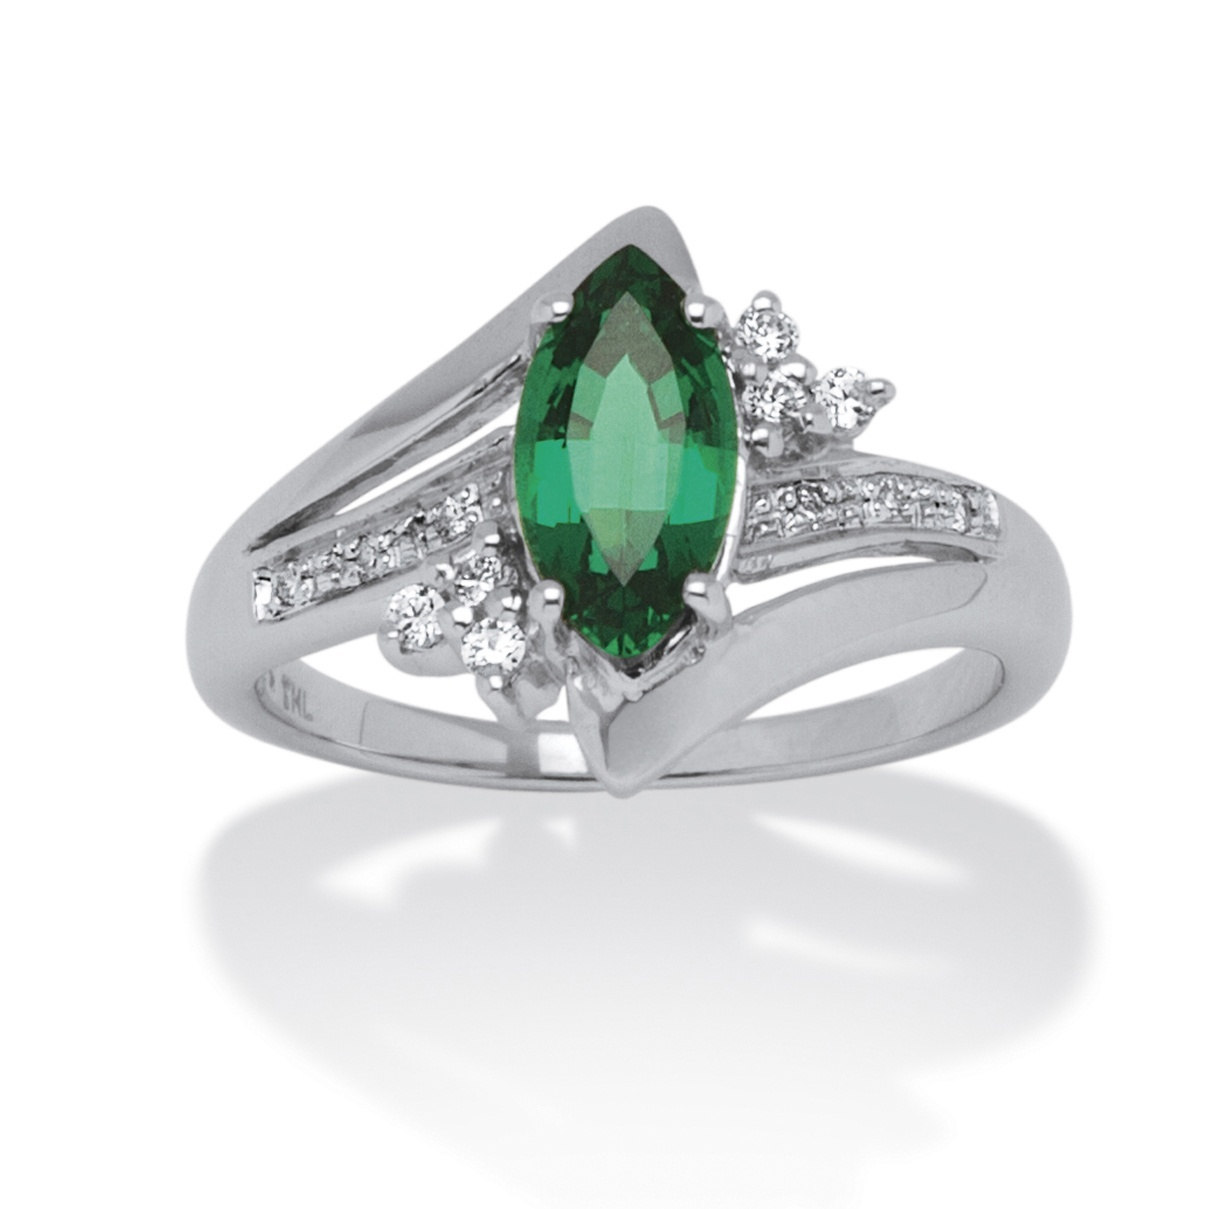 1.52 TCW Marquise-Cut Emerald Ring in Platinum over Sterling Silver by PalmBeach Jewelry